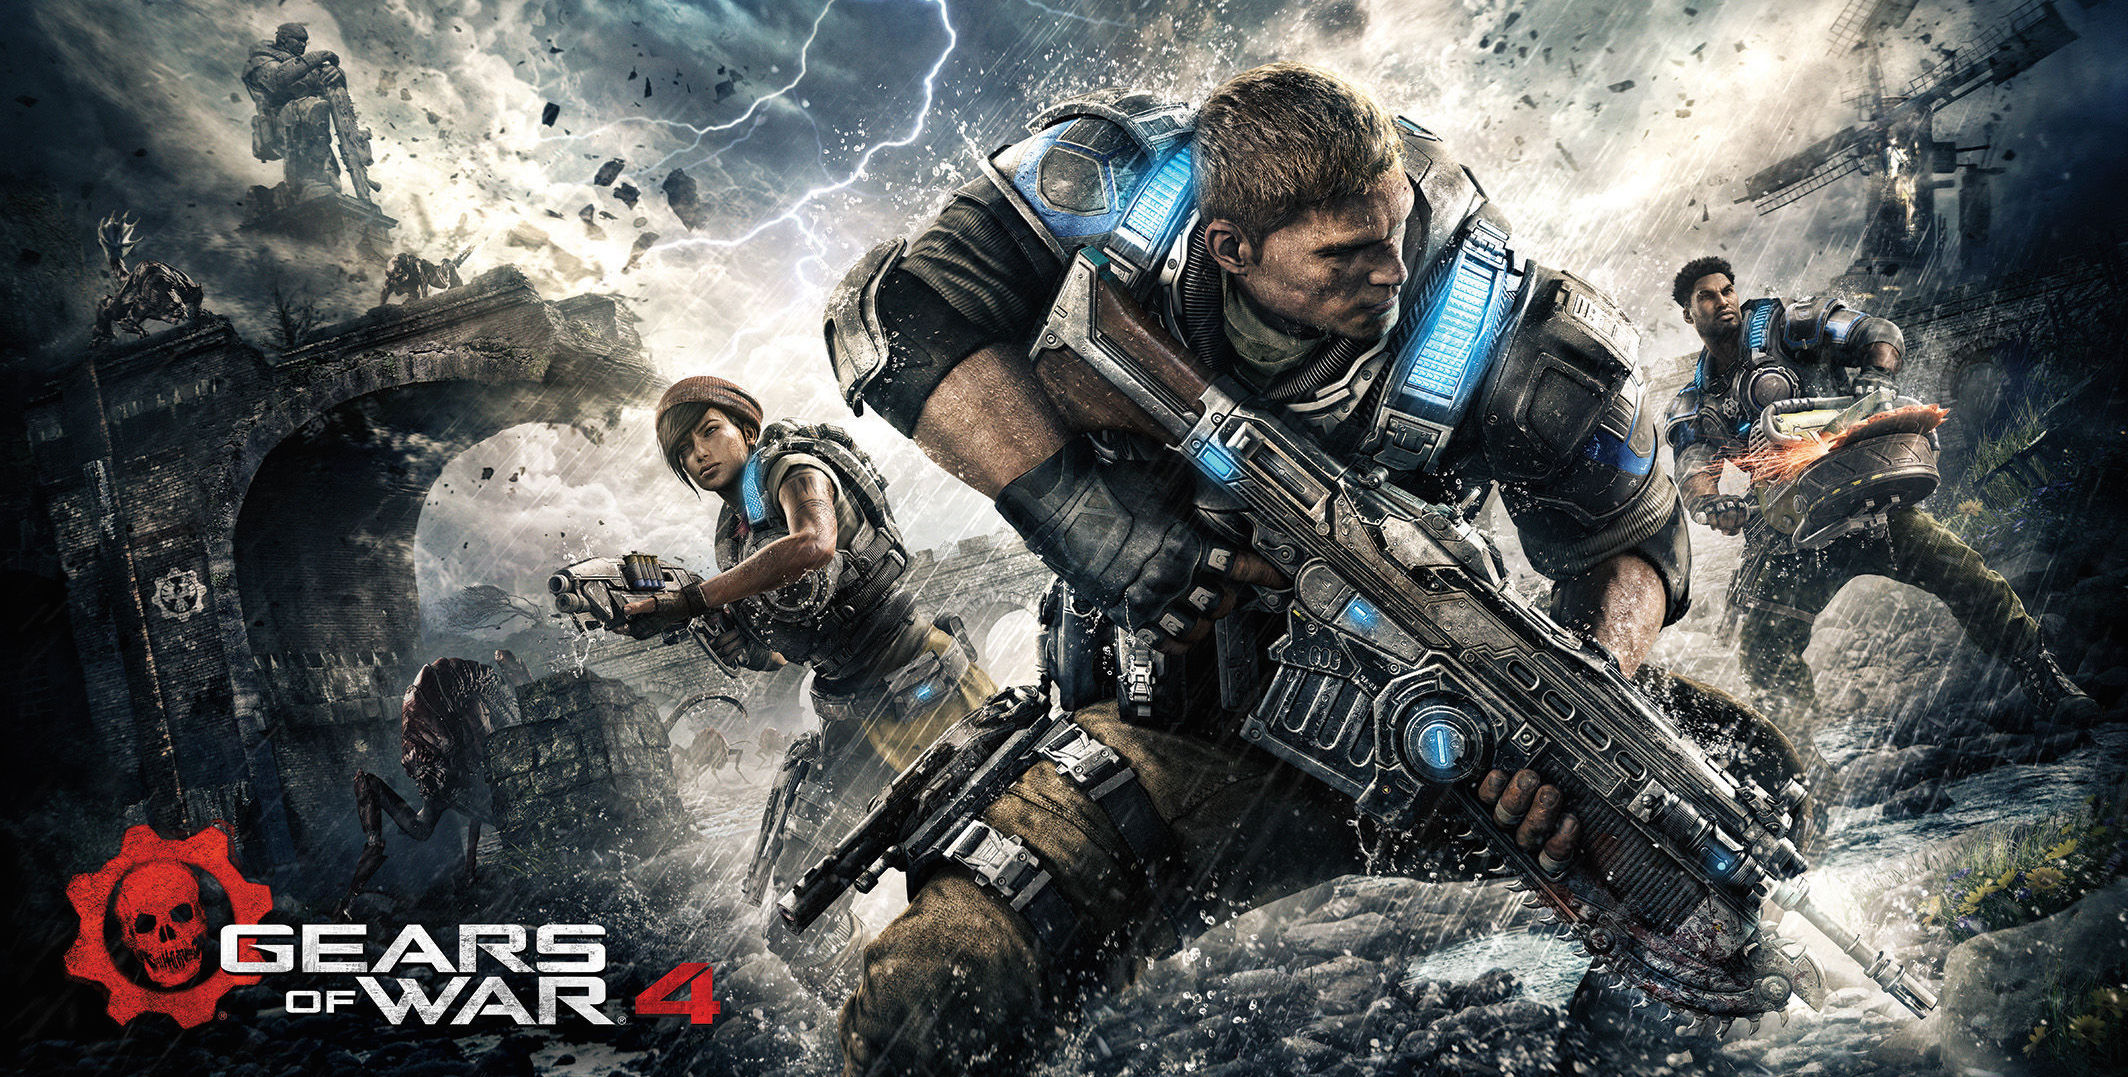 Go On A Father And Son Adventure In This New GEARS OF WAR 4 Gameplay Video